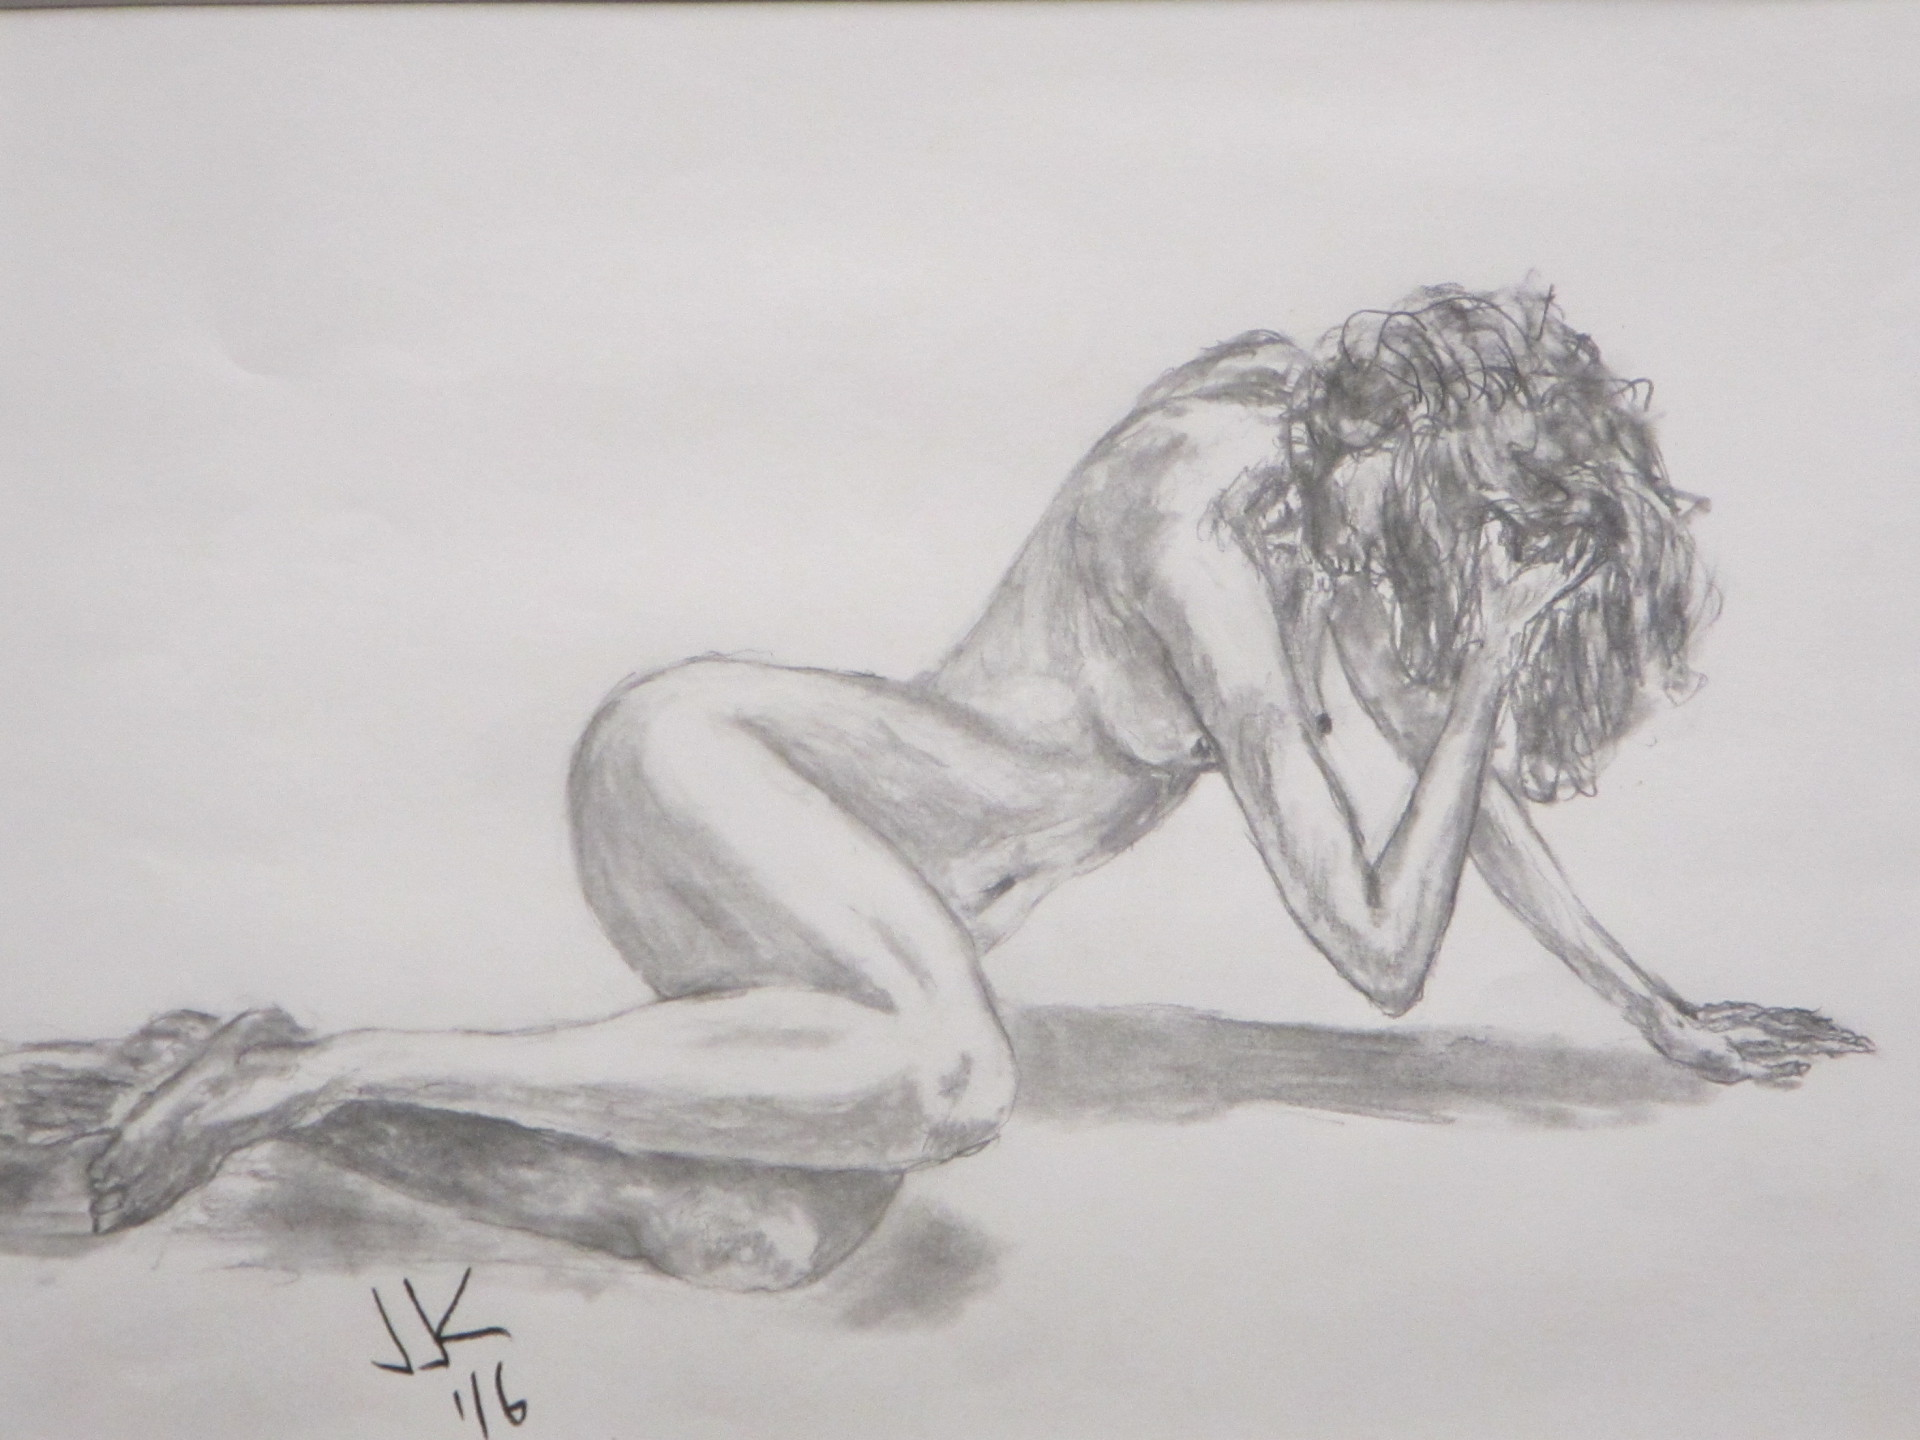 Pencil drawing of a nude woman sitting sideways on the floor and holding her head.